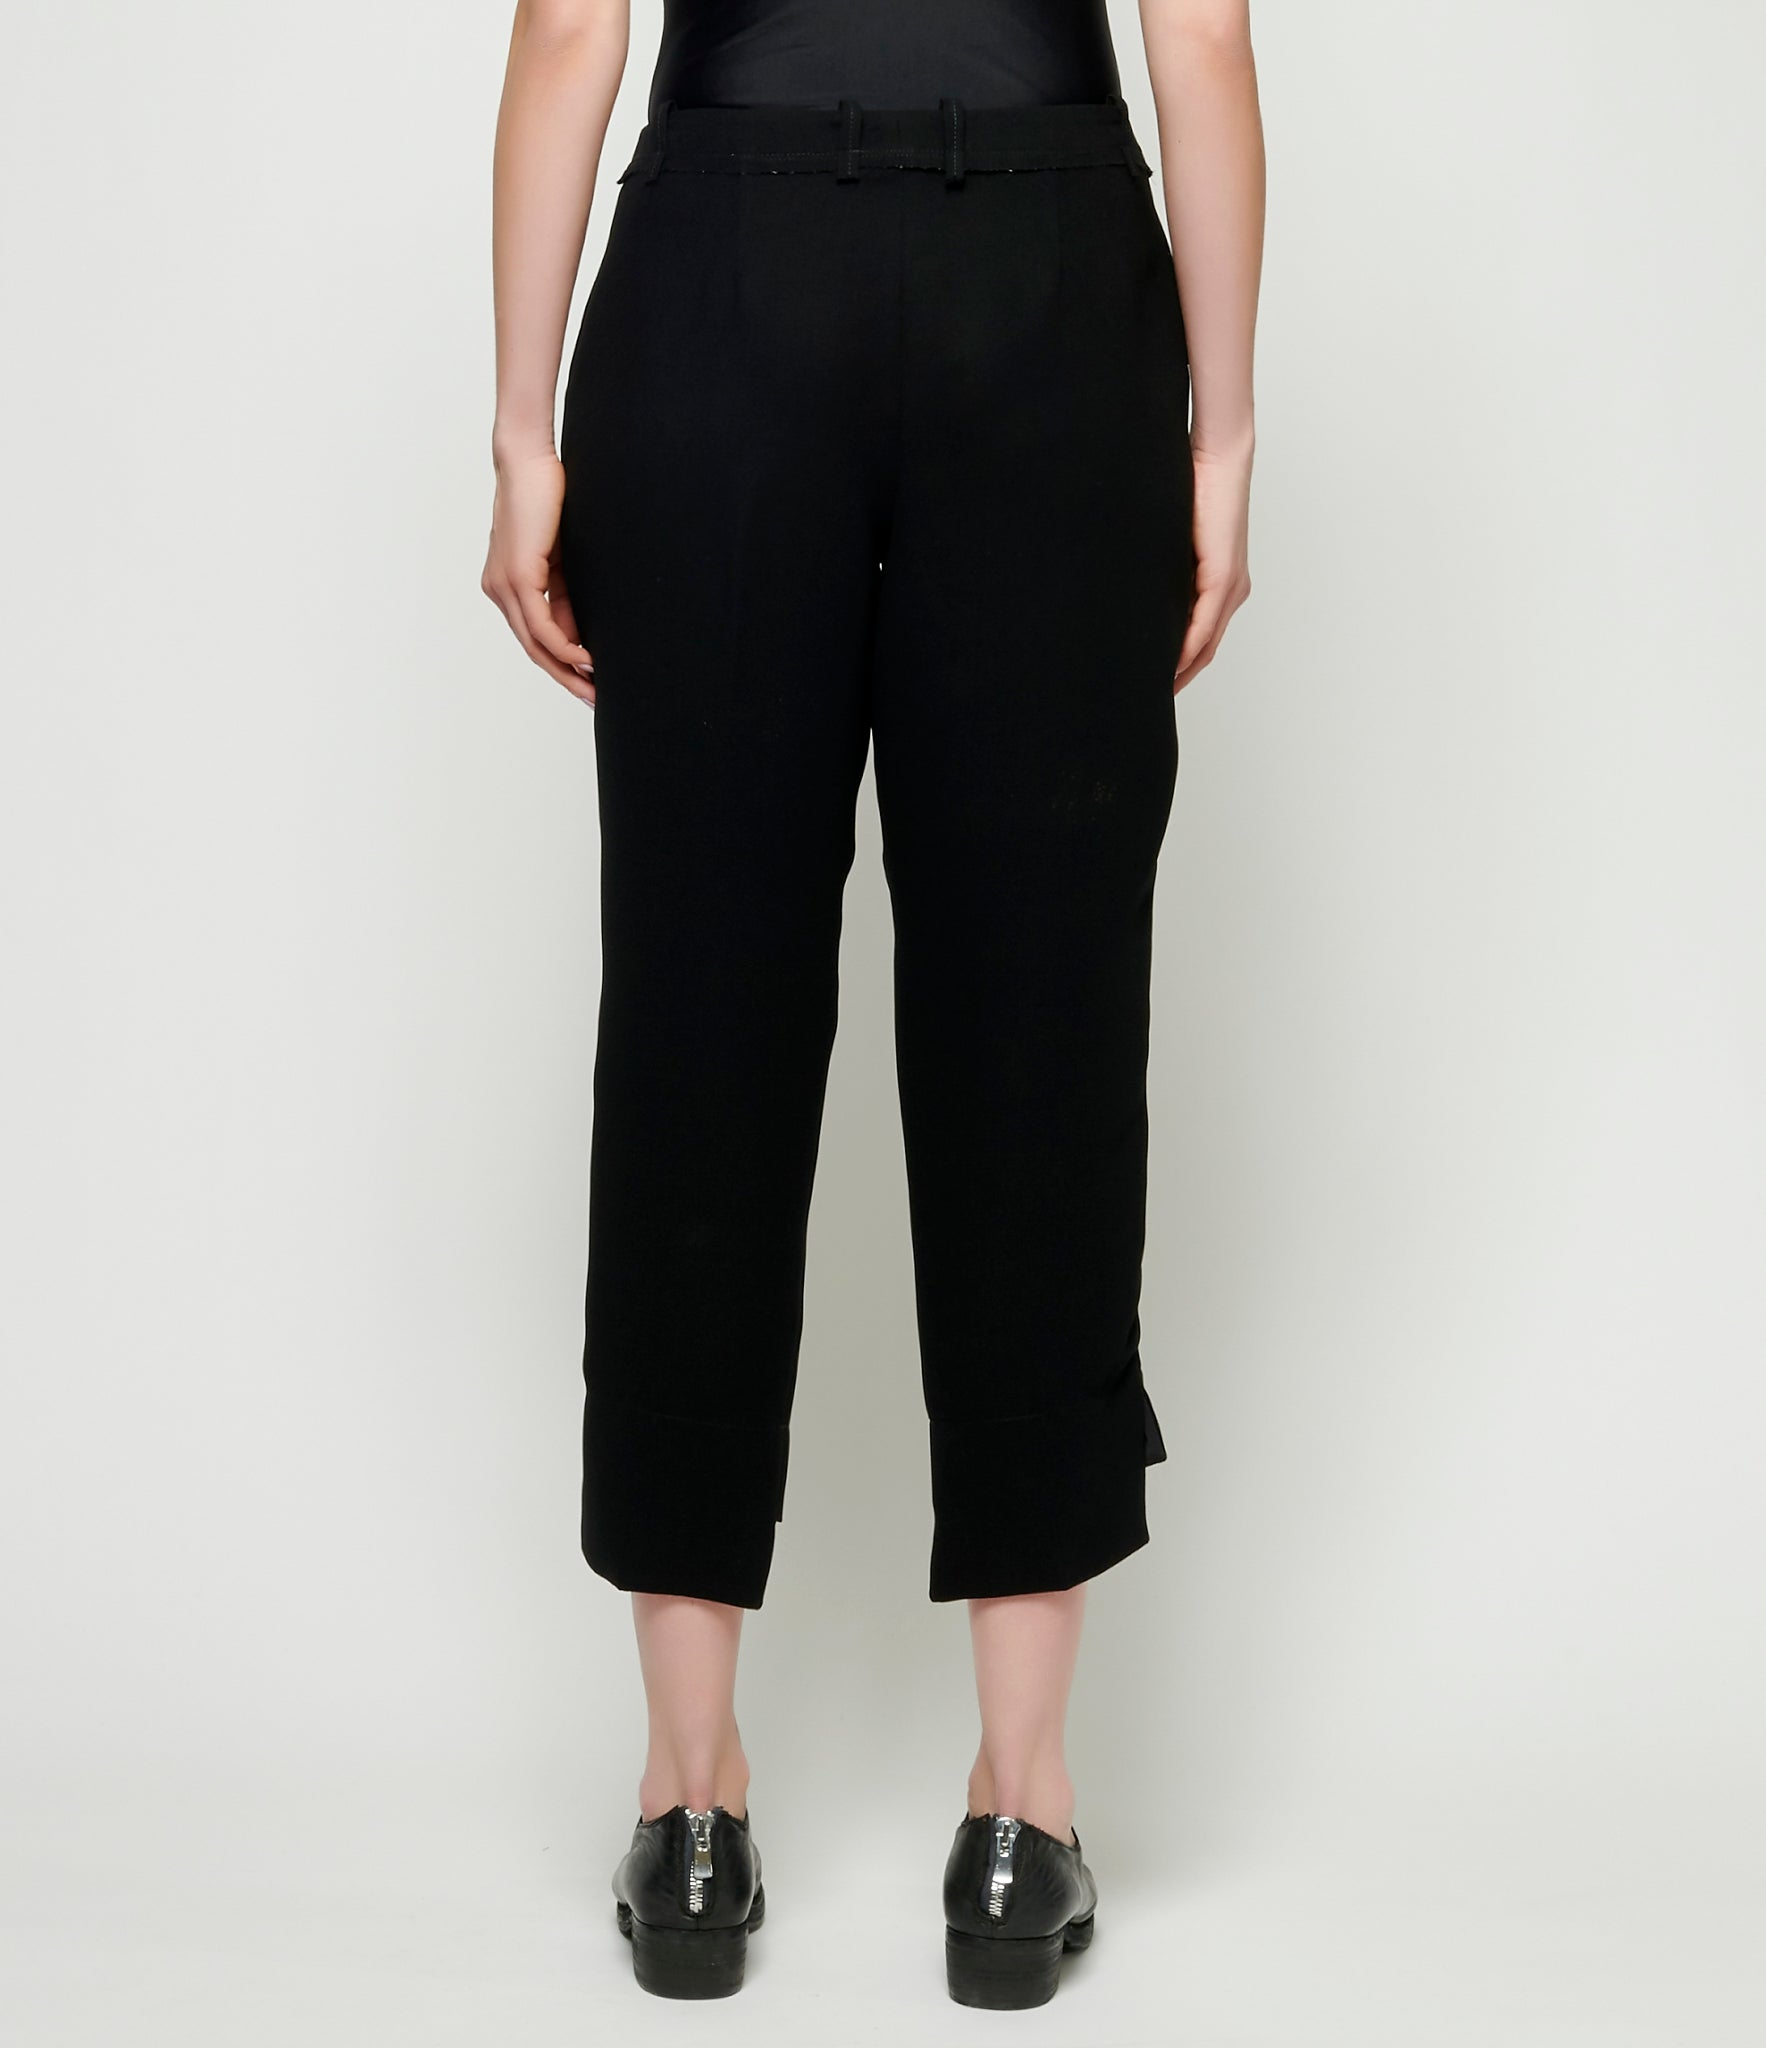 Replika Black Tapered Pant